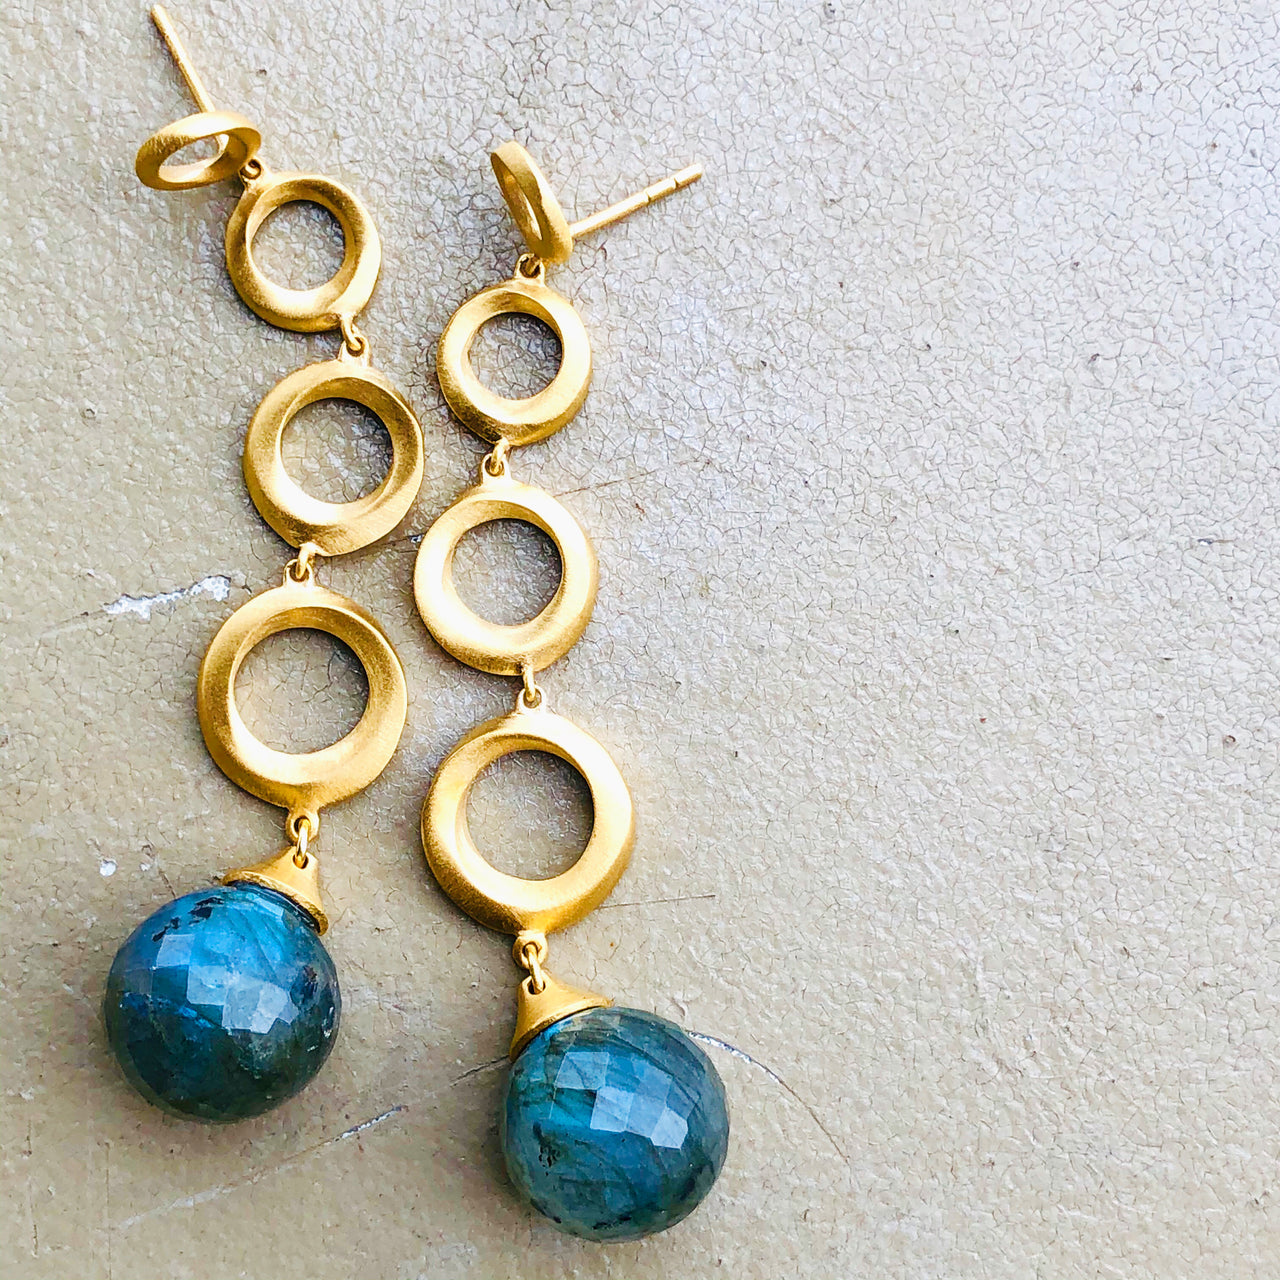 22k Gold Plated Brass Labradorite Earrings.